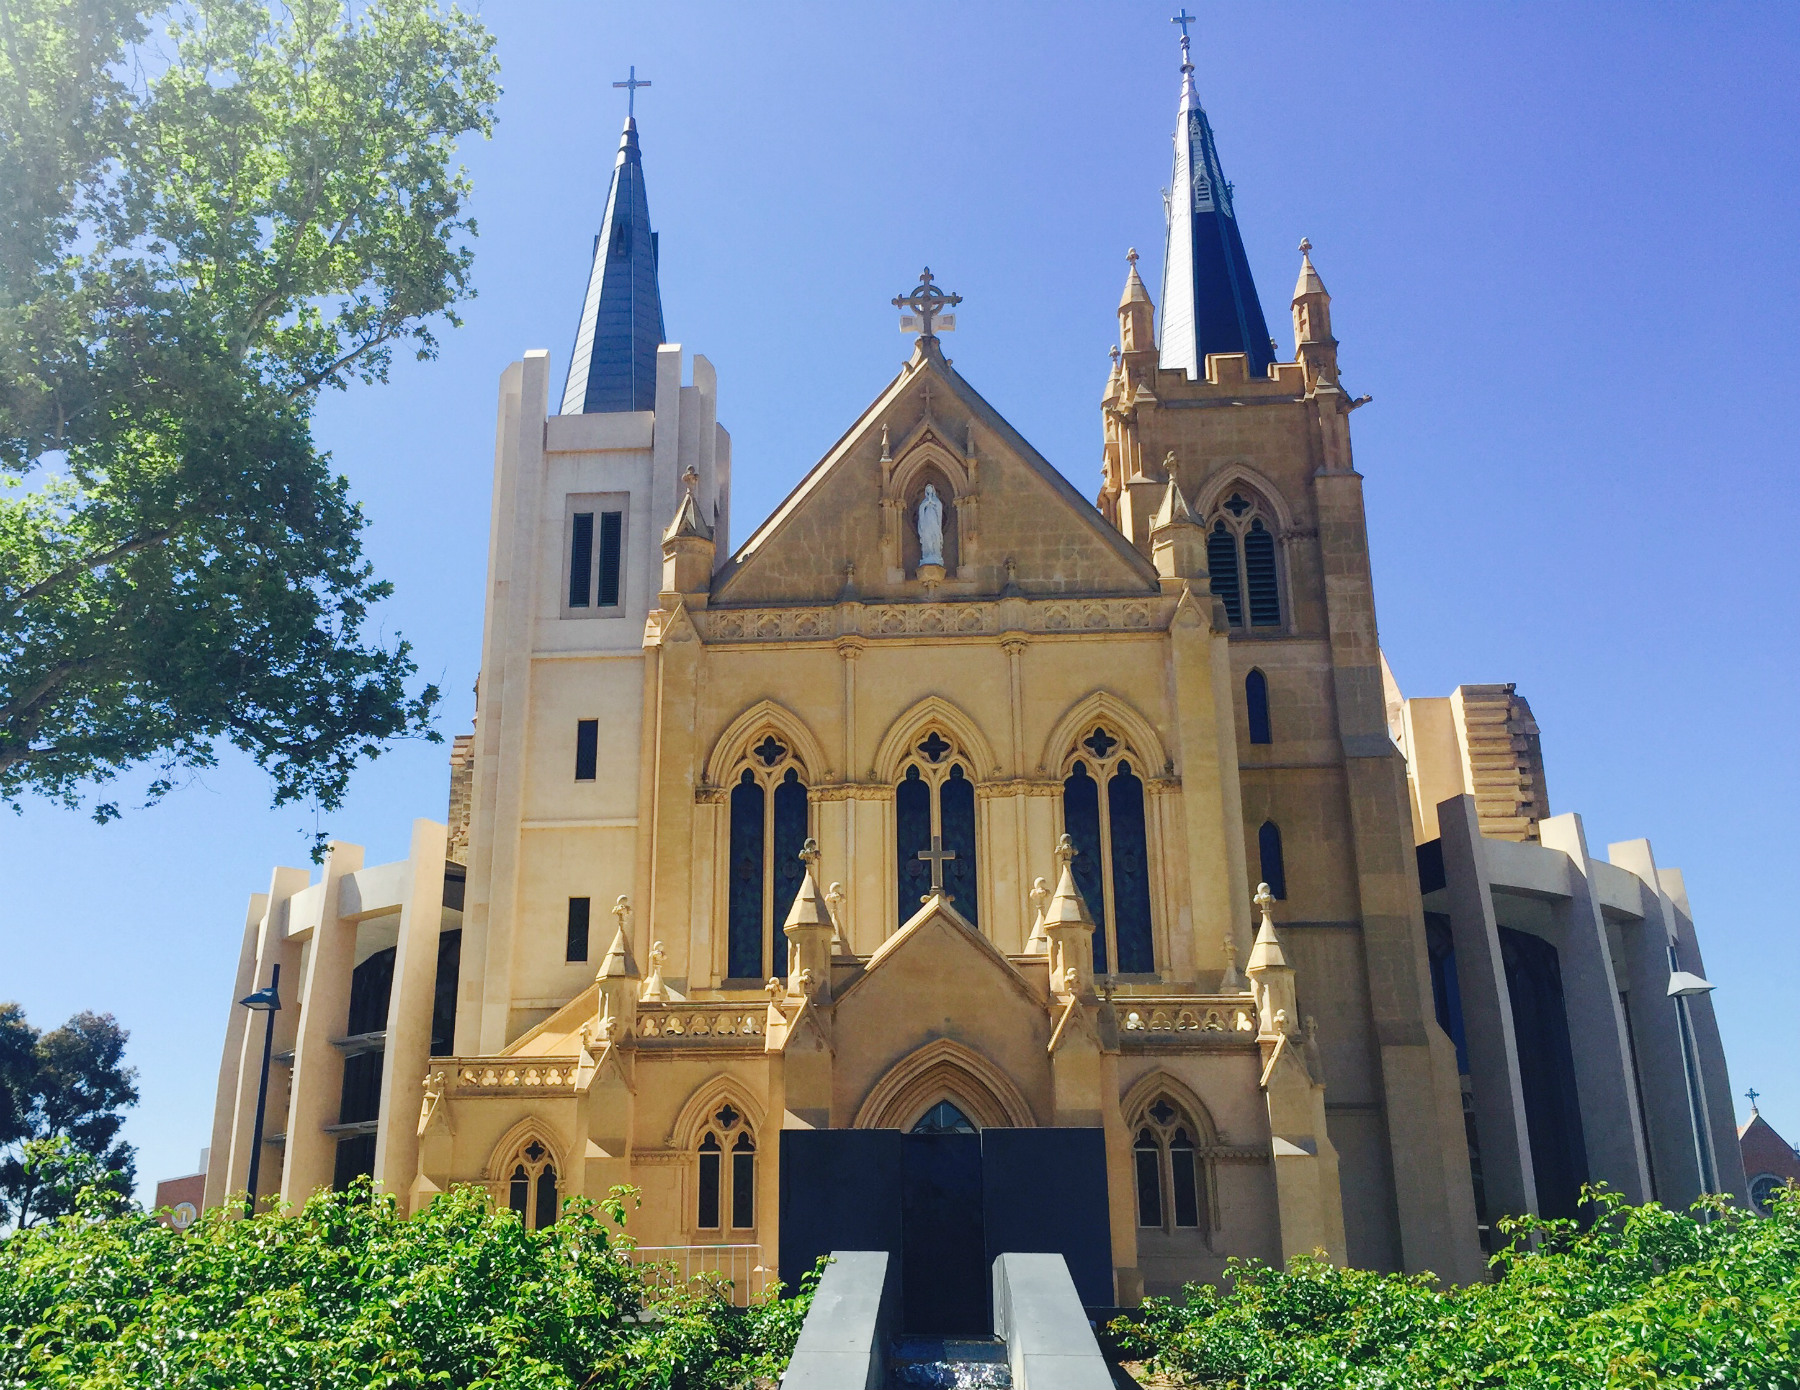 St Mary's Cathedral in the City of Perth